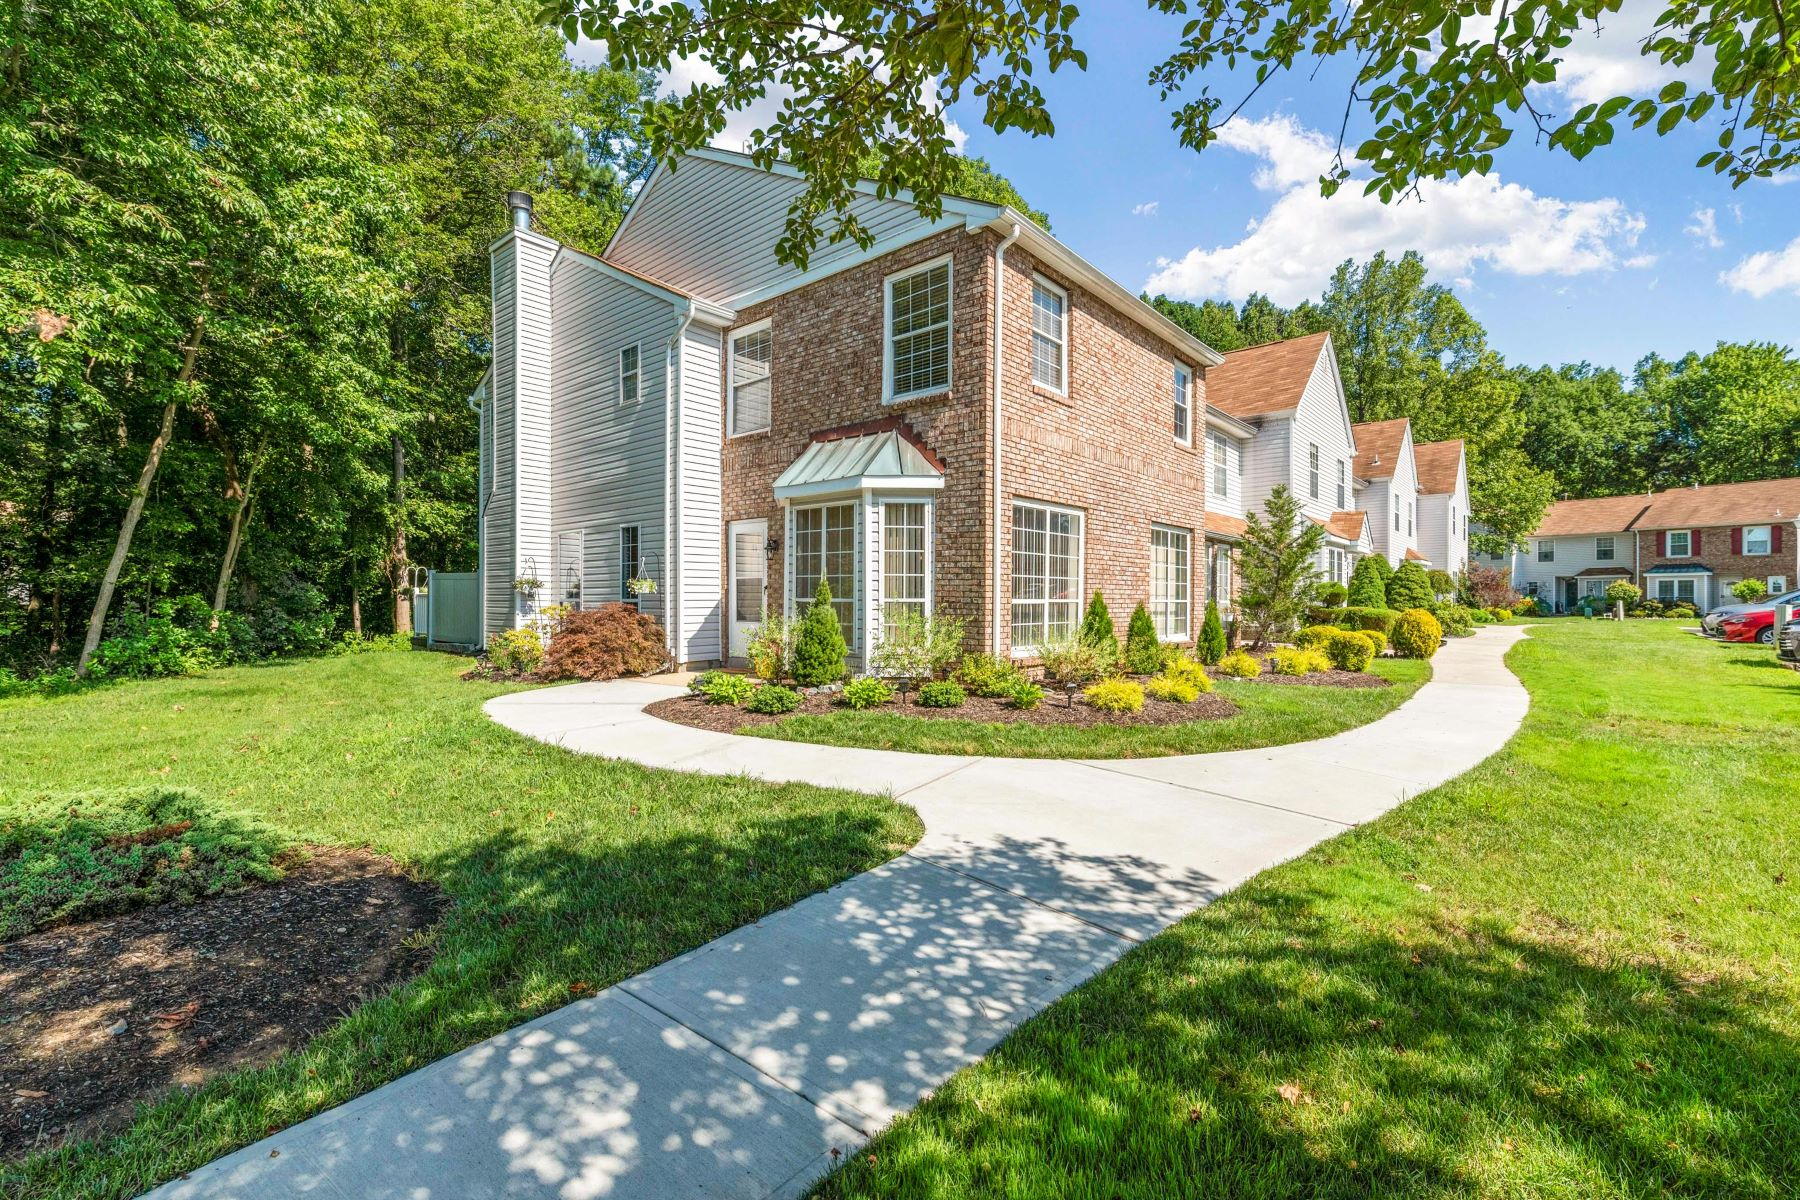 Single Family Homes for Active at 86 Foxwood Place Morganville, New Jersey 07751 United States